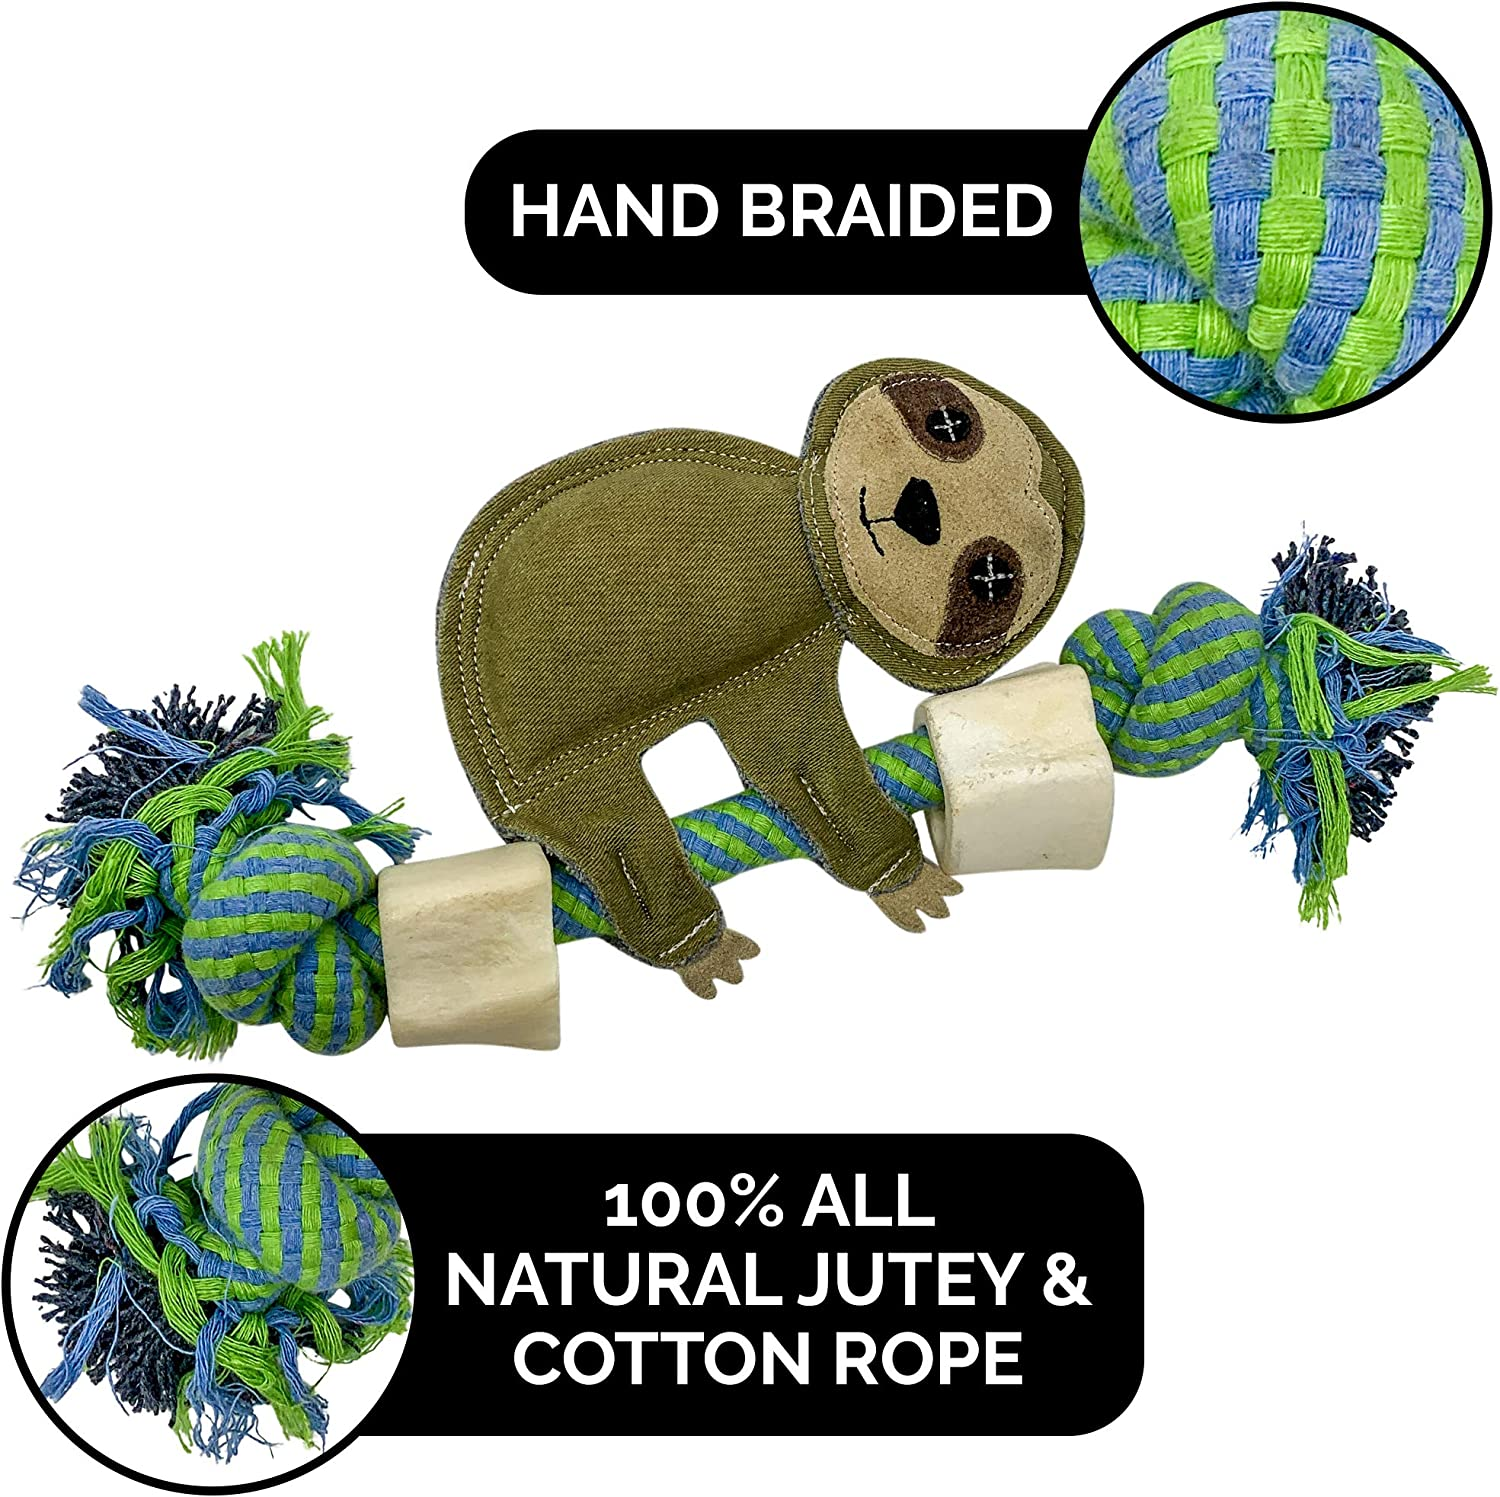 Pet Zone Choy Character All Natural Rope Water Buffalo Bone Dog Chews and Dog Toys 3 Options Available Eco-Friendly Interactive Dog Toys, Dog Chew Toy, Dog Bone, Dog Rope Toy /& Dog Tug Toy in One